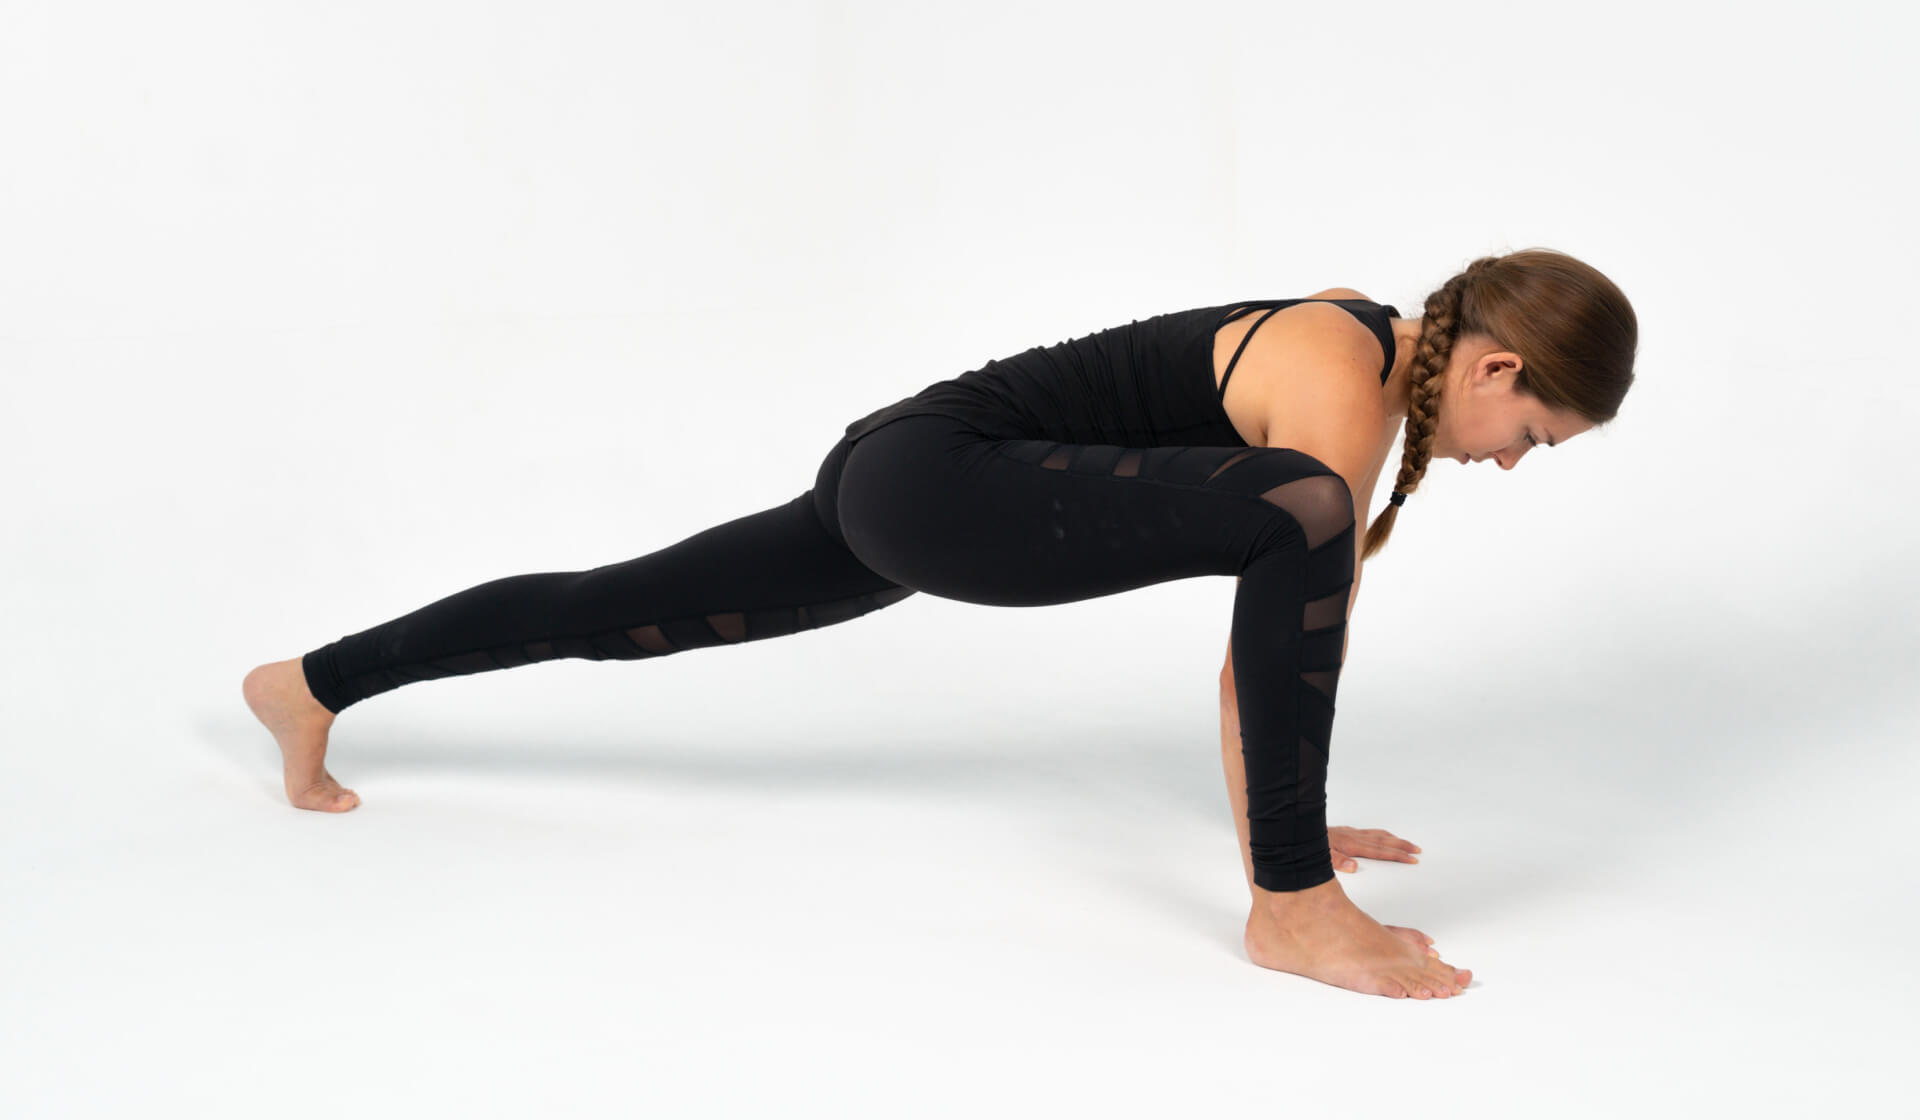 Woman yoga teacher dressed in all black practicing a yoga lunge pose (lizard pose) against a white backdrop